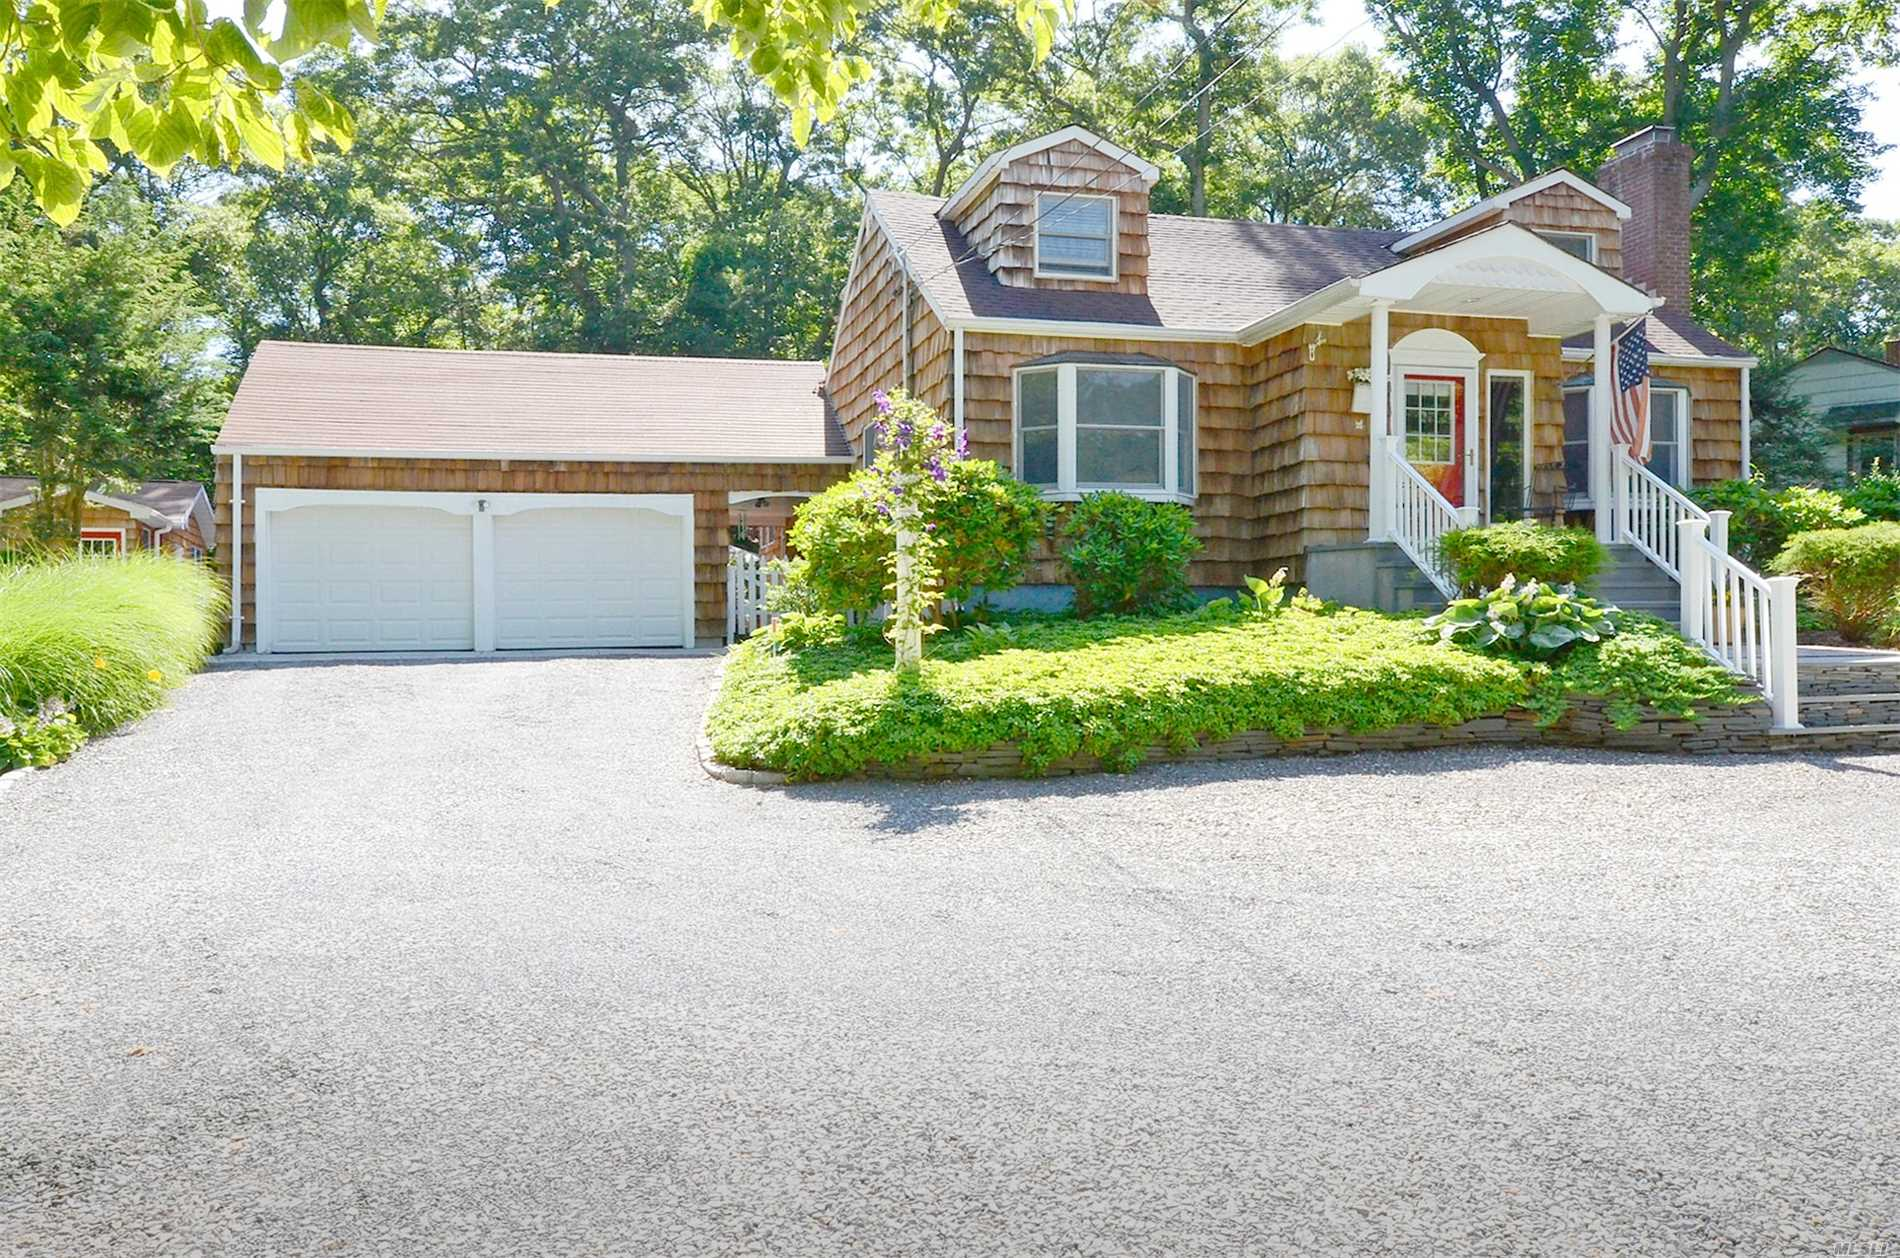 Nestled On 1.6 Acres This Currier And Ives Inspired Home Will Impress You! Living Rm W/ Cozy Stone Fplce, Beautifully Updated Granite Eik W/ Ss Appliances, Center Island And Tons Of Natural Light, Dining Rm, French Doors To Family Rm, Extended 1st Flr Master Suite W/ Gorgeous Bathroom, Finished Basement, Ig Pool, Patio, Lush Landscaping, Workshop, Guest House, Trails To Stroll The Expansive Property, 2 Car Garage, Incredibly Maintained Home, Peaceful Living Awaits! One Of A Kind